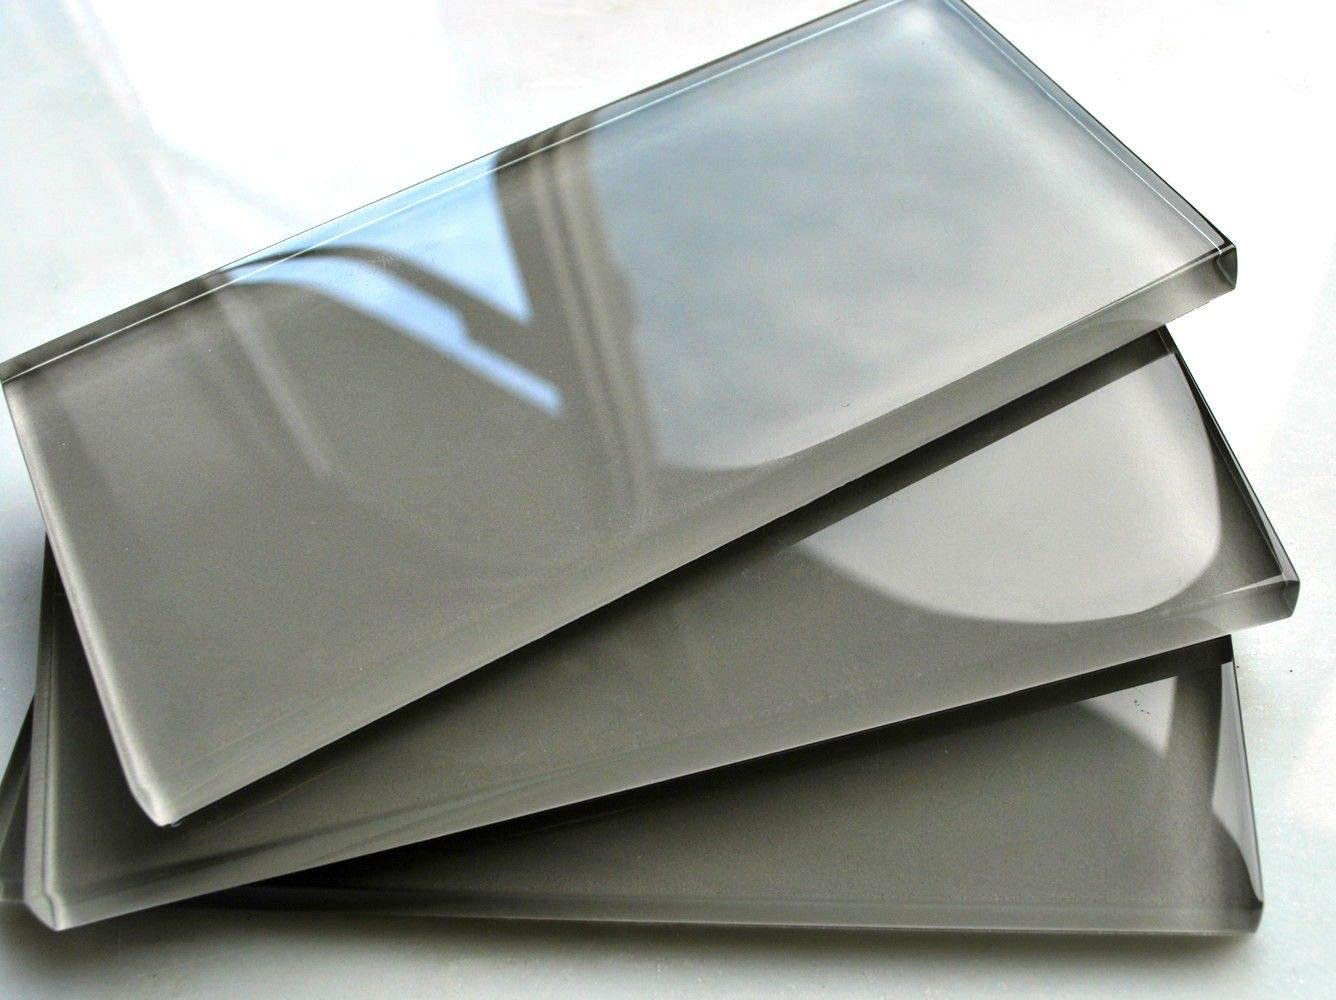 - 3x6 Cool Gray Subway Clear Glass Tile Backsplash Wall (Sold By The